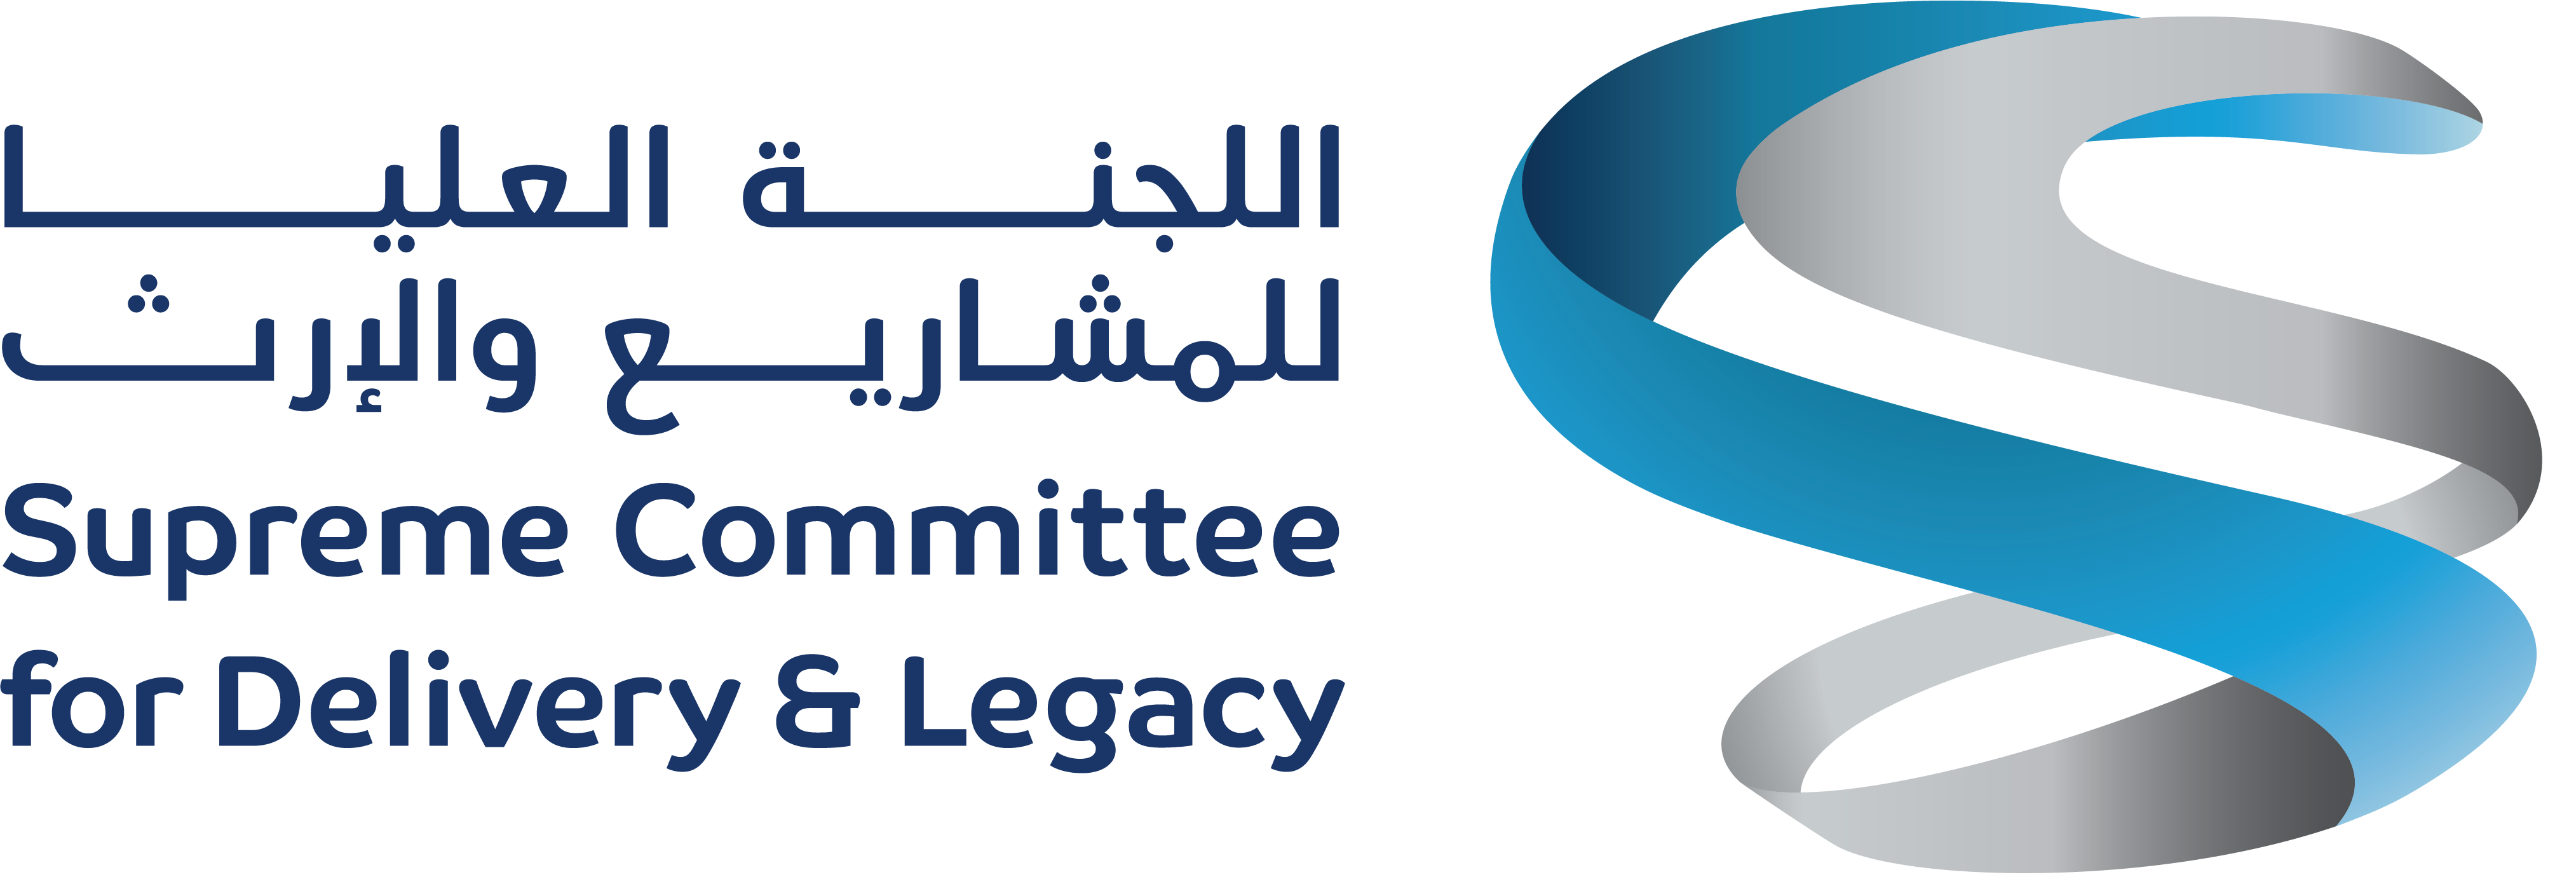 Supreme Committee logo